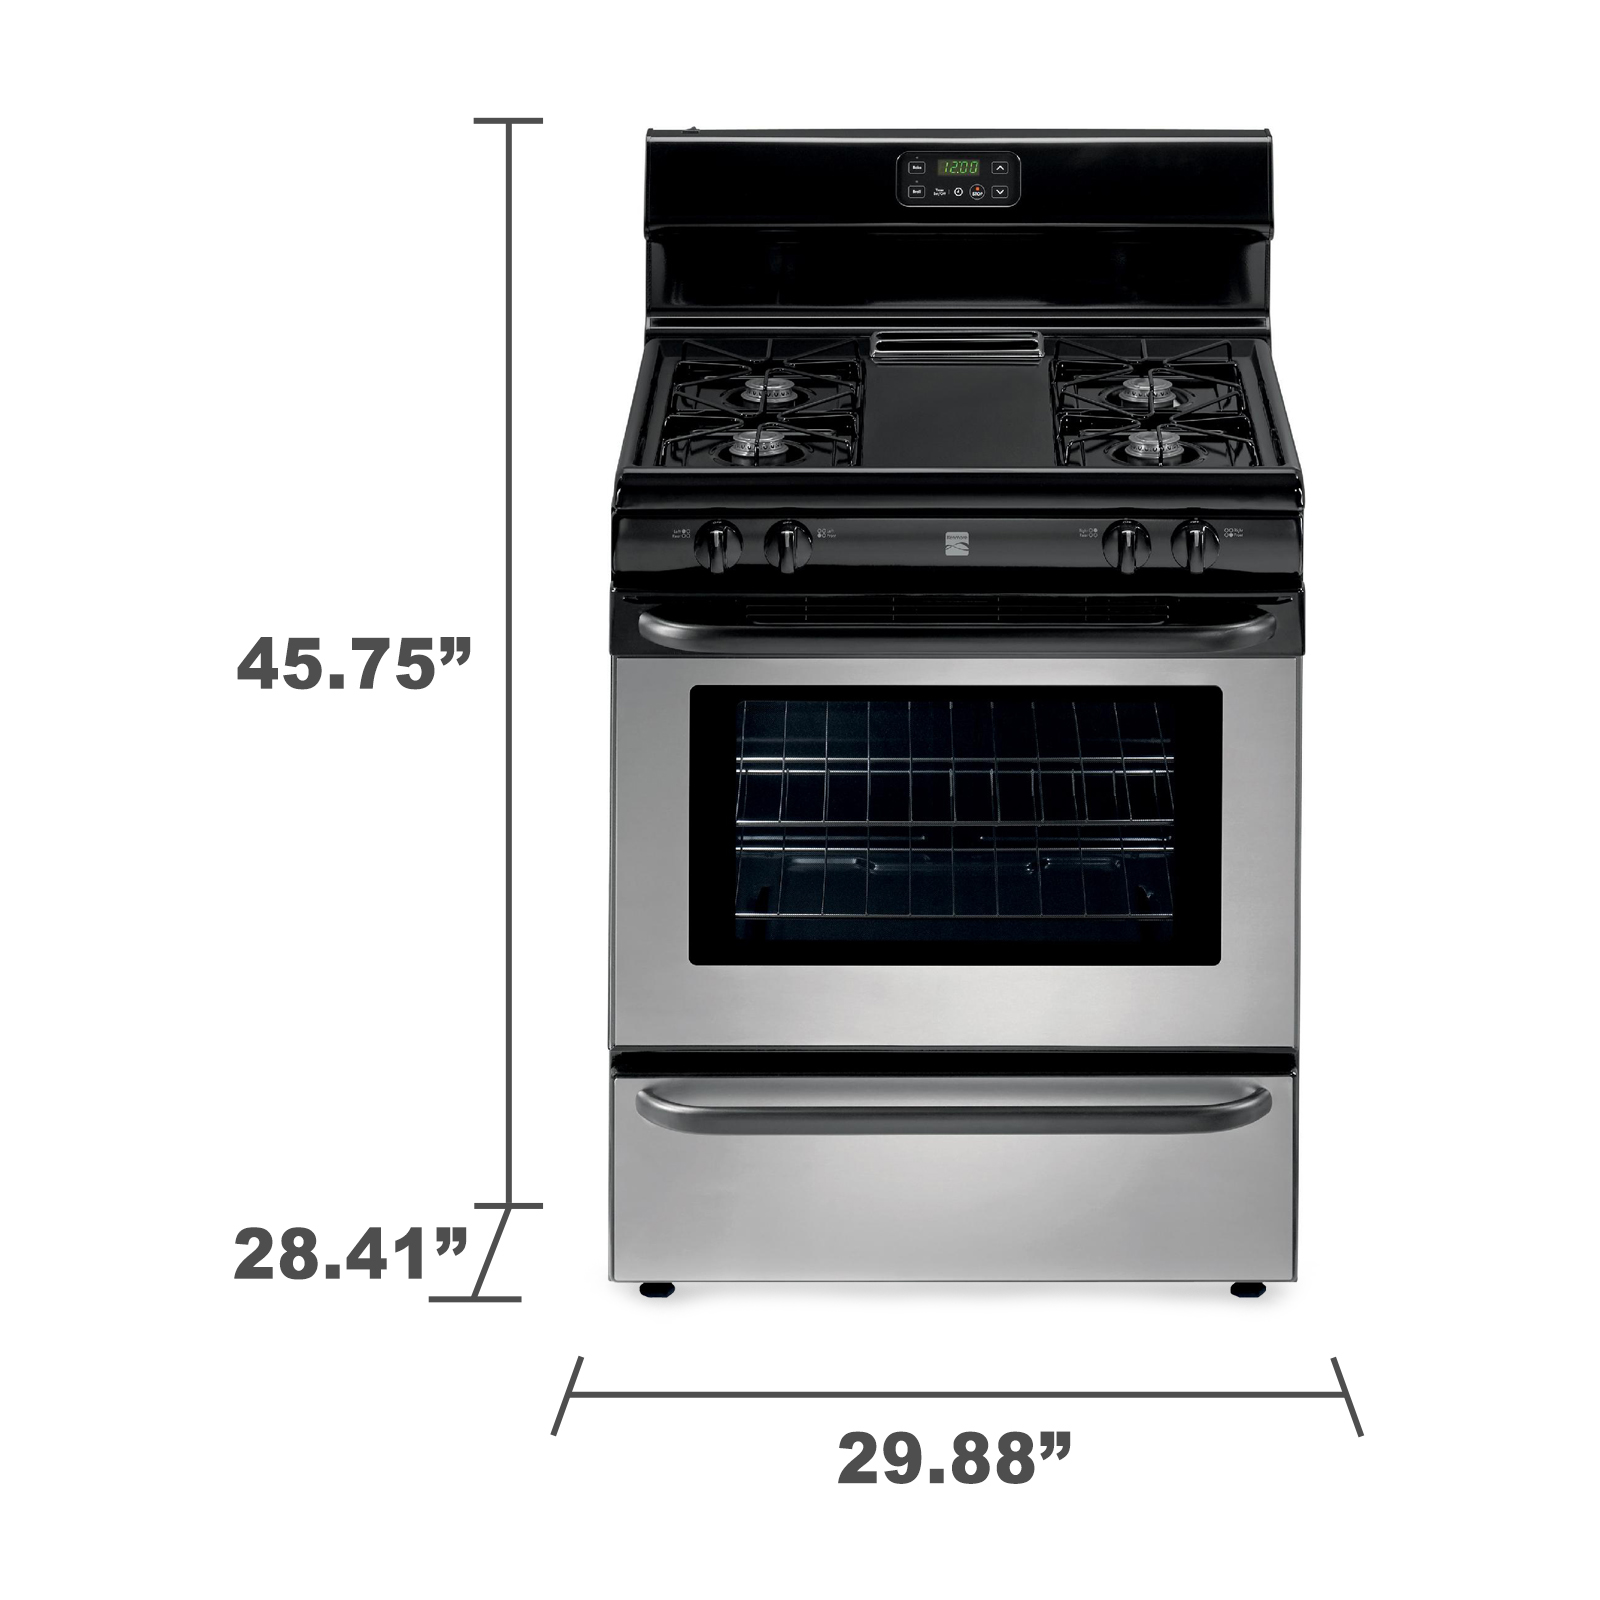 Kenmore 73033 4.2 cu. ft. Freestanding Gas Range w/ Broil & Serve™ Drawer - Stainless Steel